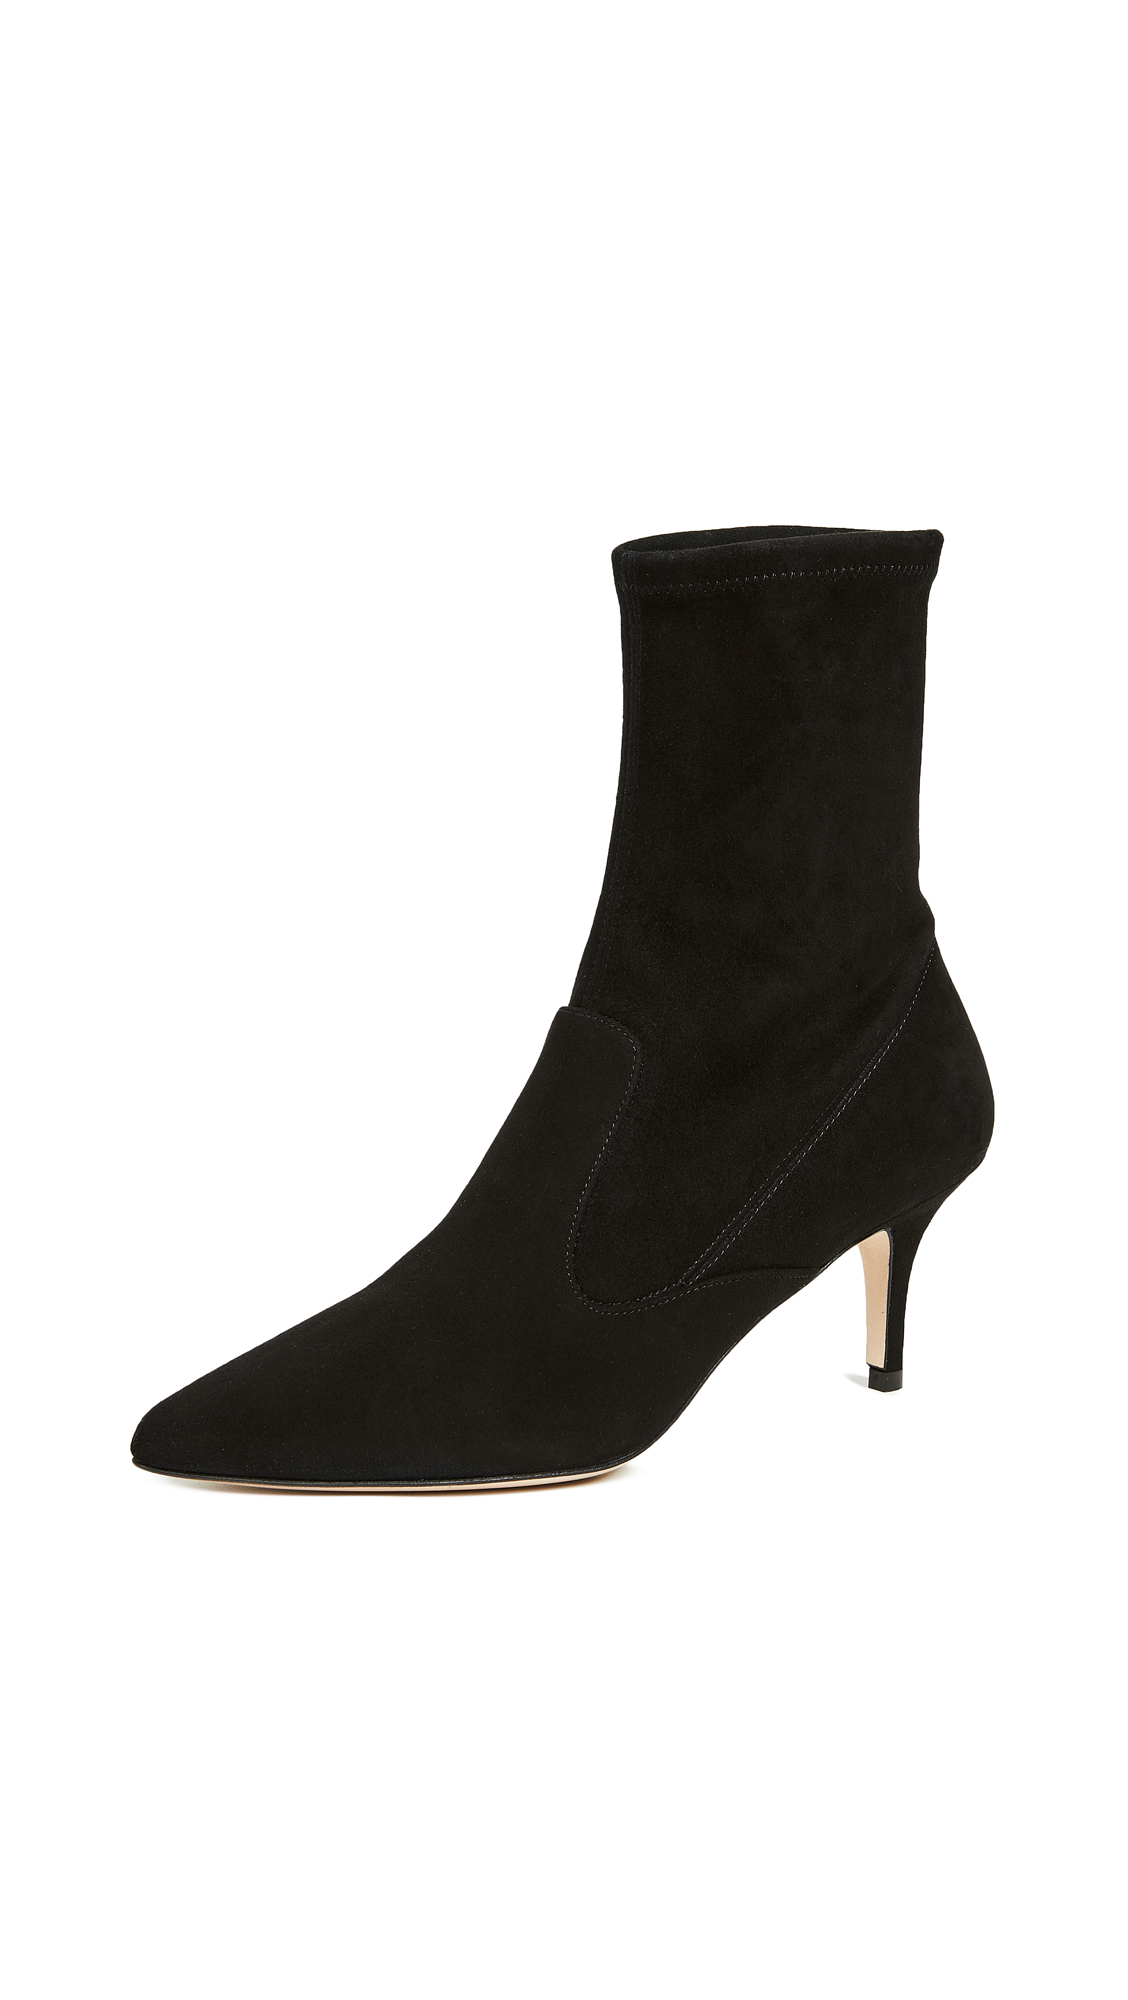 L.K. Bennett Lou Stretch Ankle Boots - Black